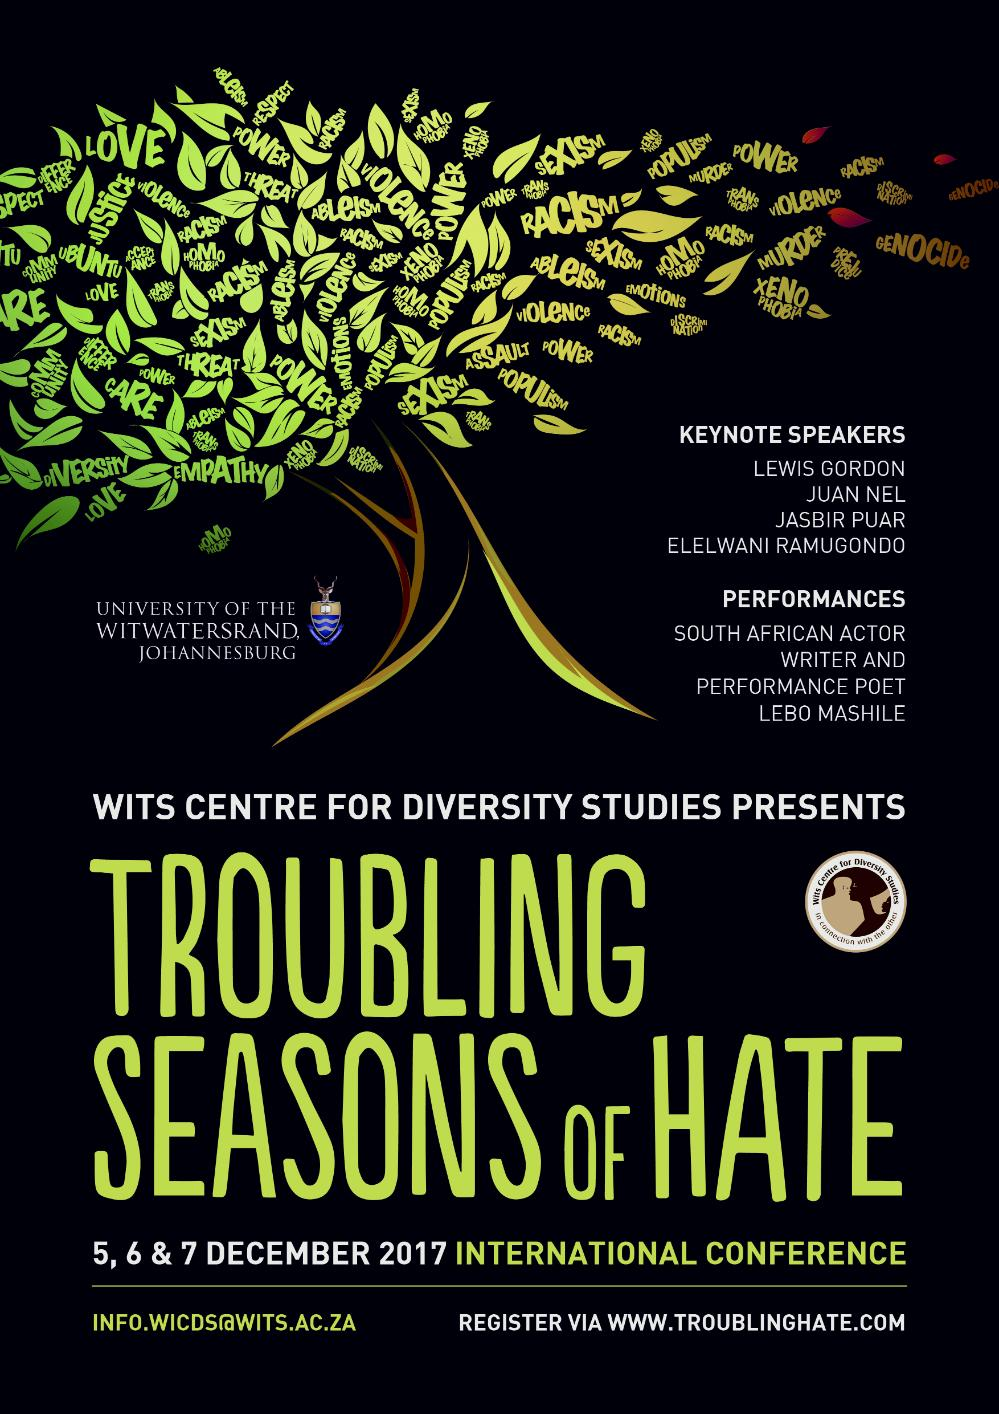 Troubling Seasons of Hate